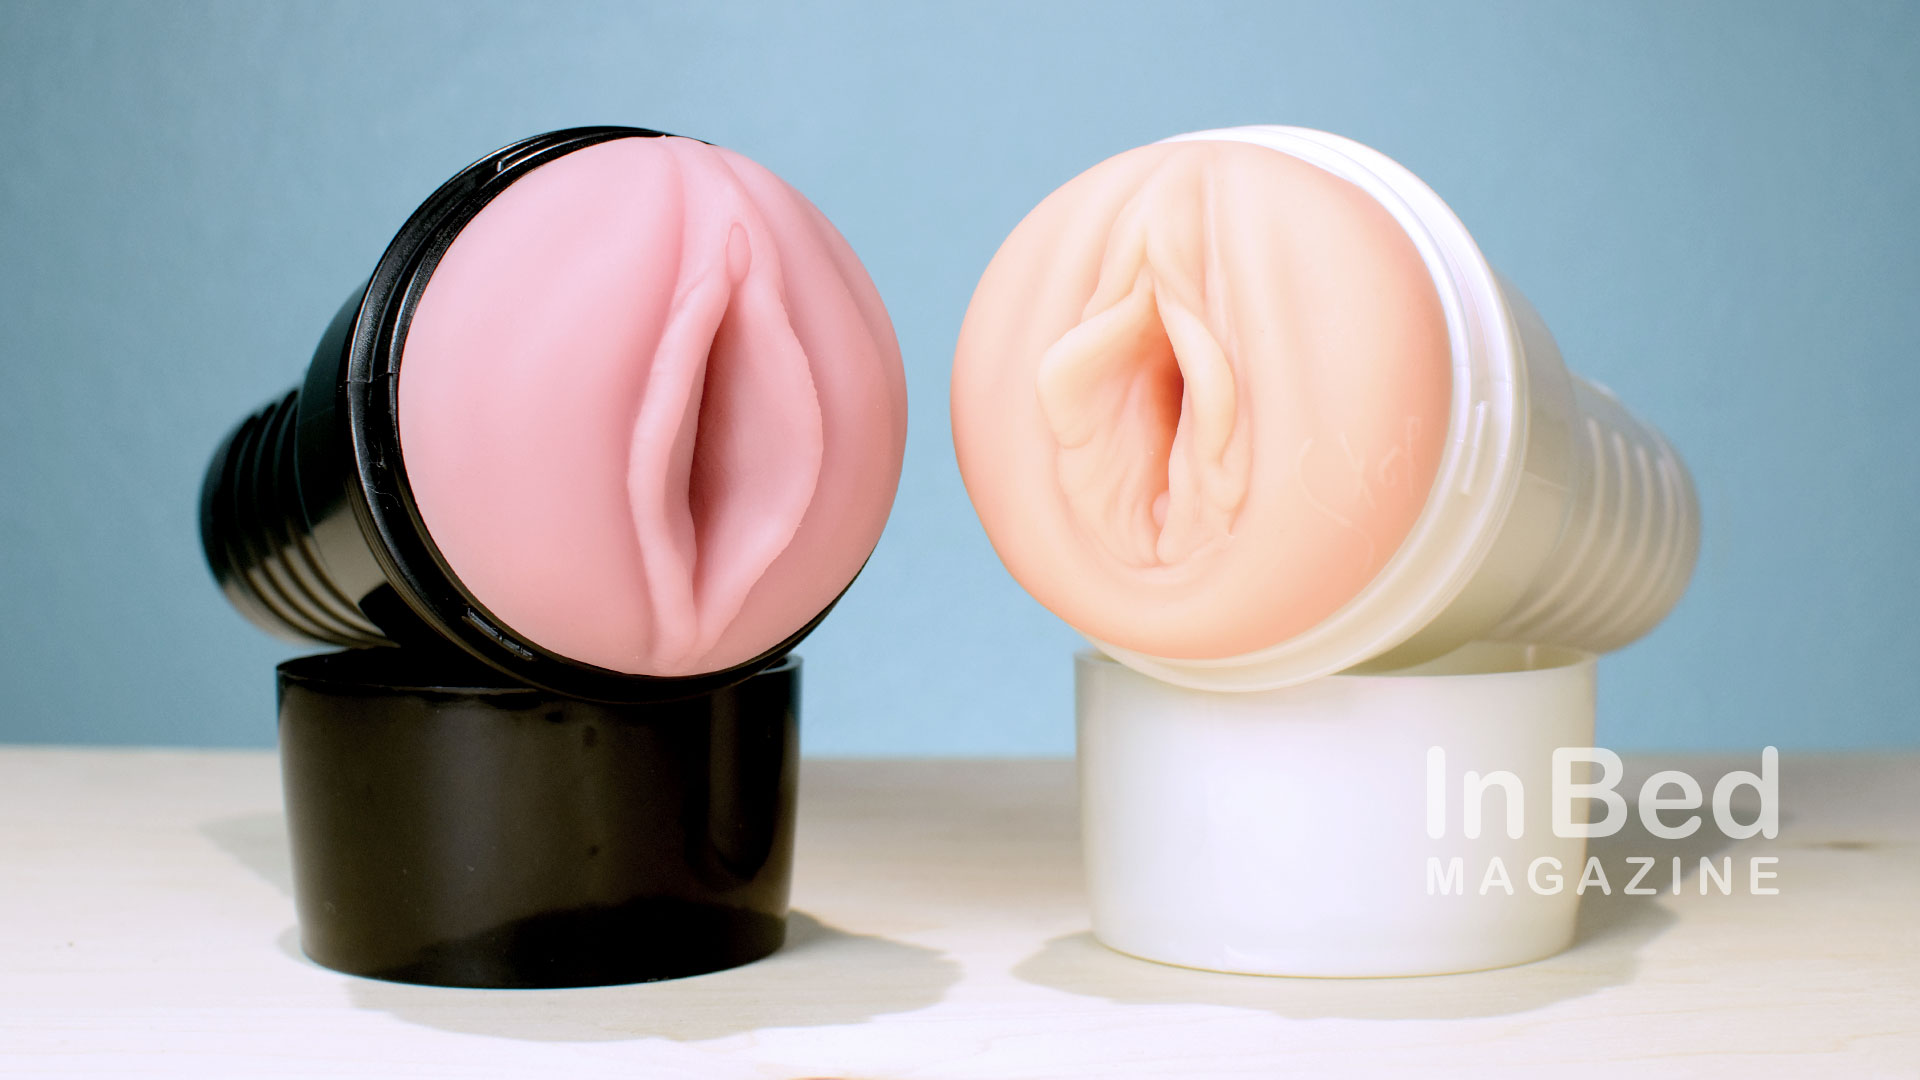 How To Make A Fleshlight That Simulates An Anus Gay